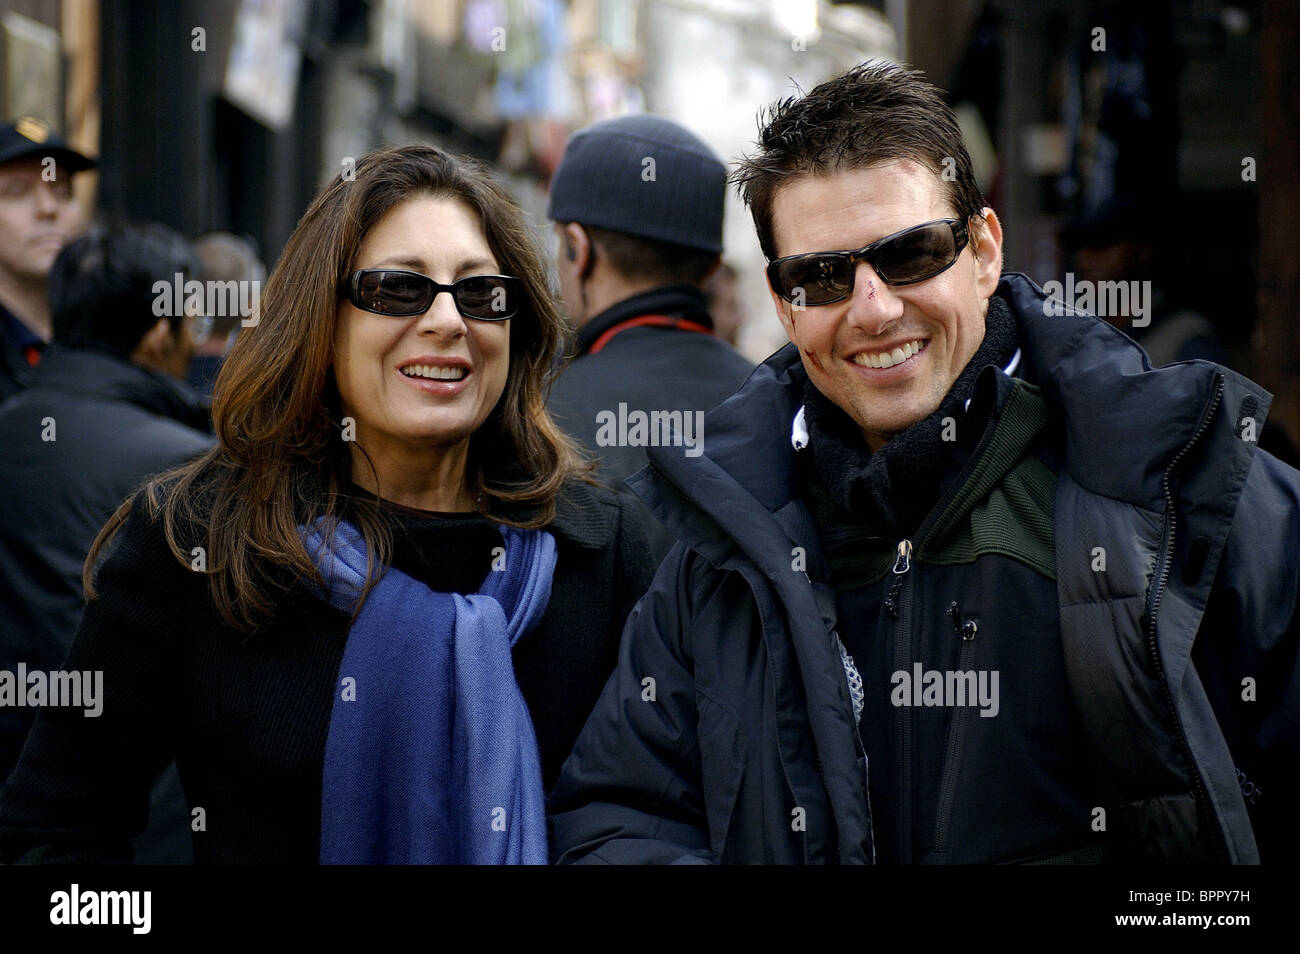 PAULA WAGNER & TOM CRUISE MISSION: IMPOSSIBLE III